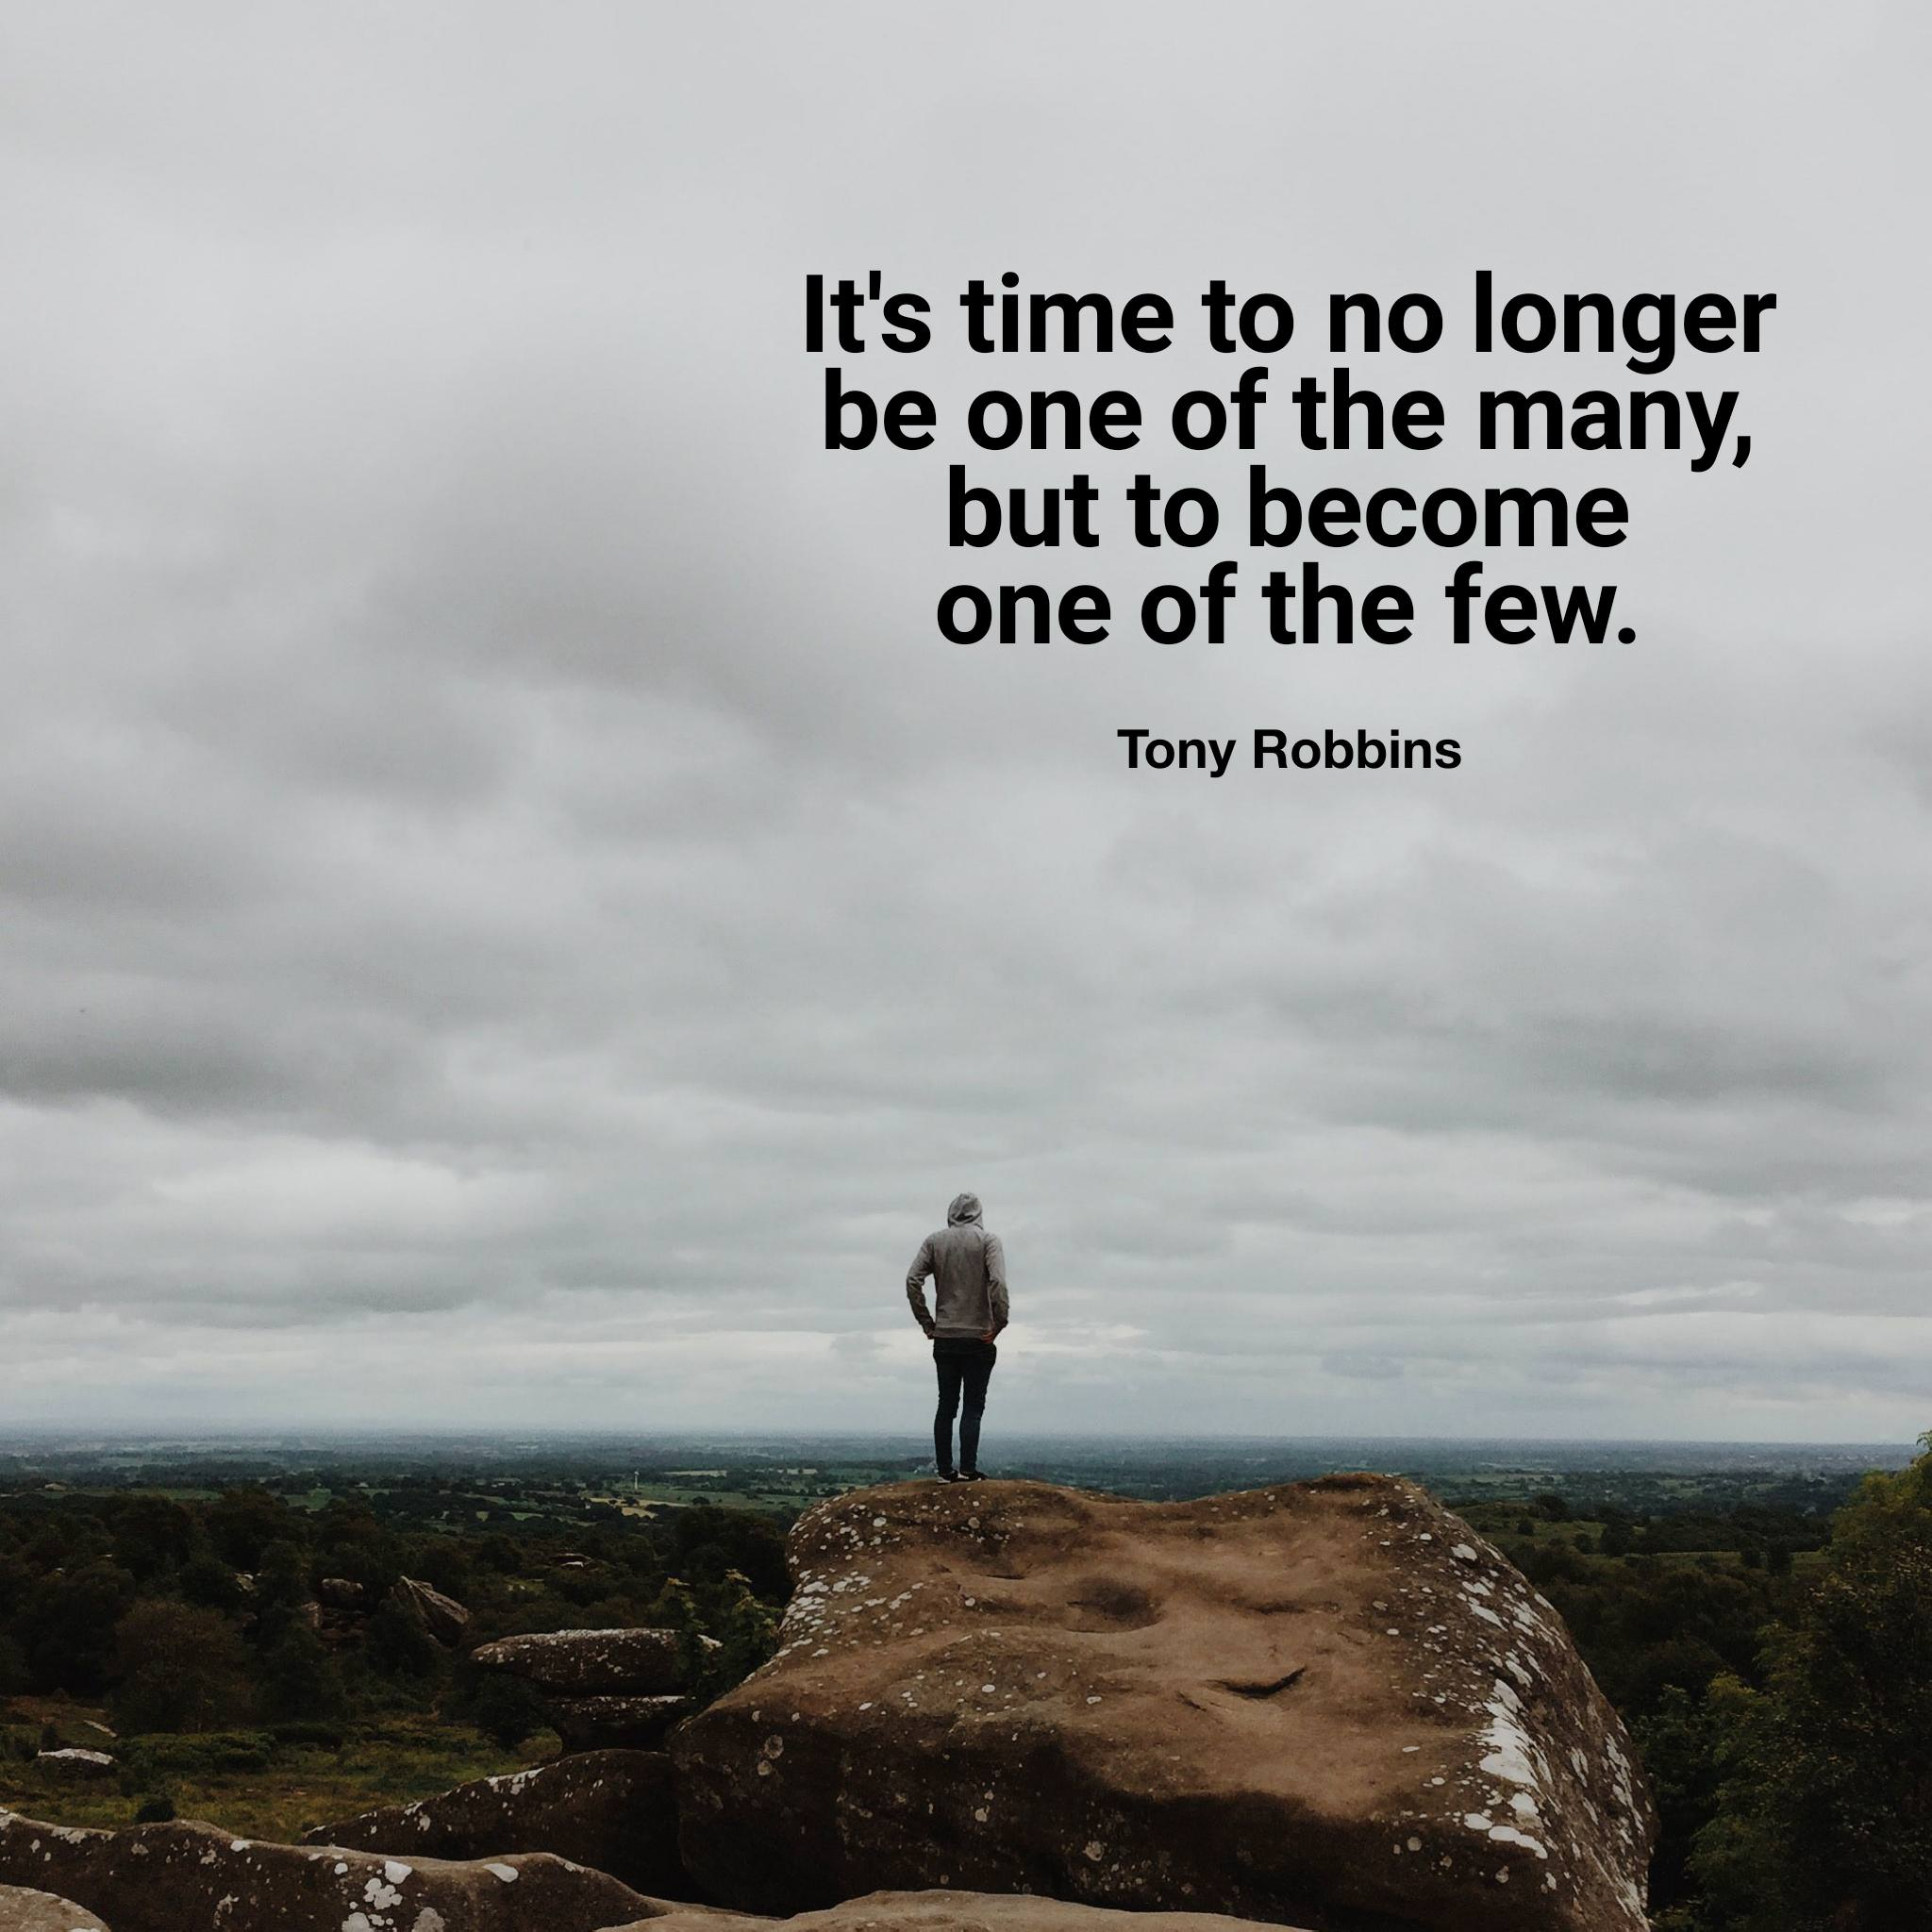 [image] It's time